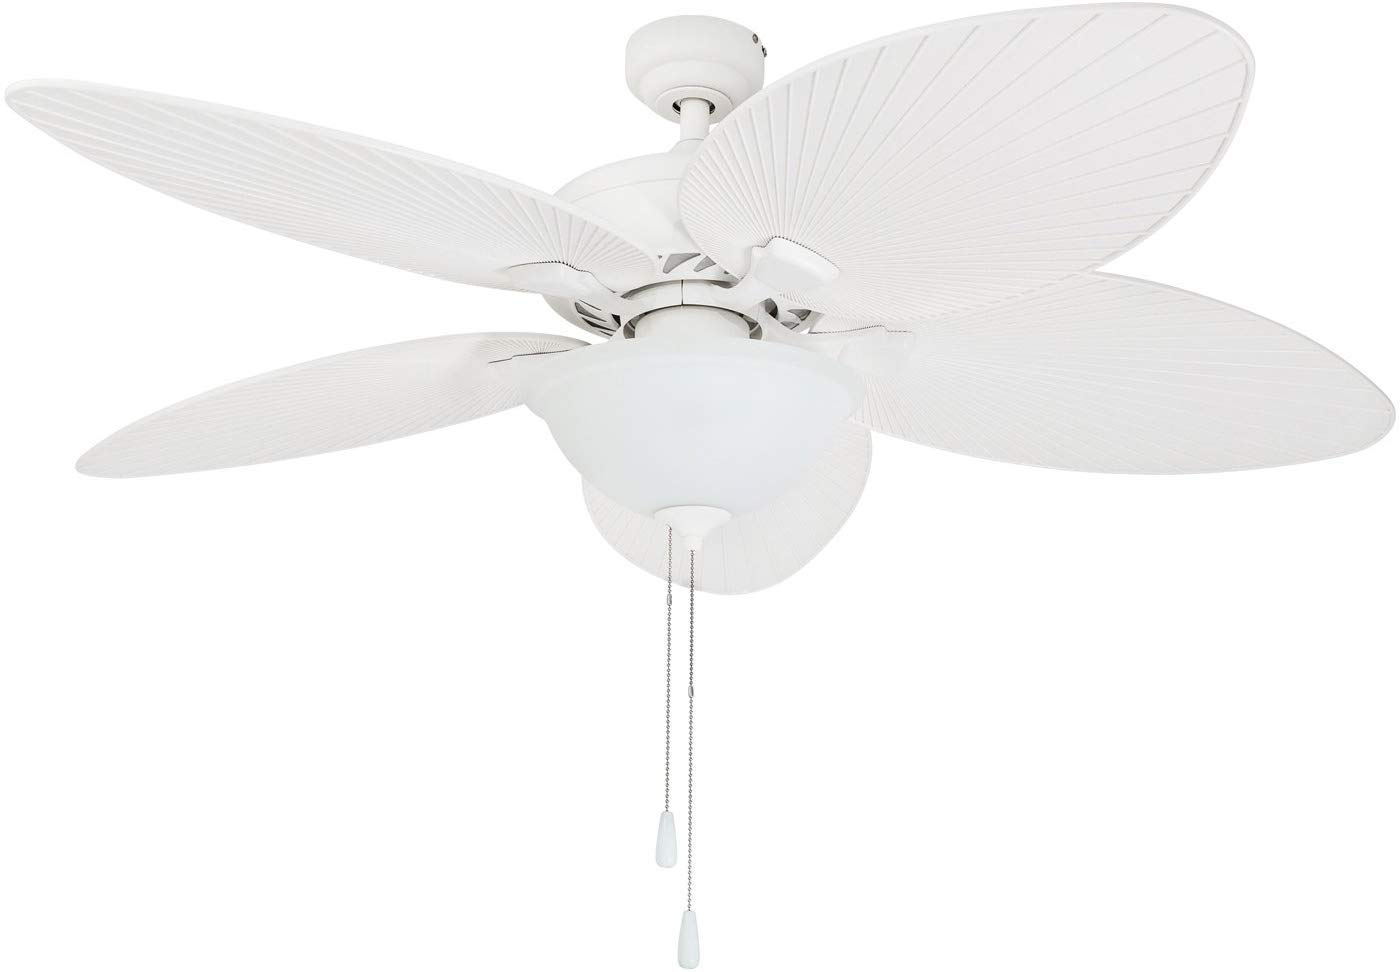 Prominence Home 80017-01 Palm Valley Tropical Ceiling Fan with Palm Leaf Blades, Indoor Outdoor, 52 inches, White